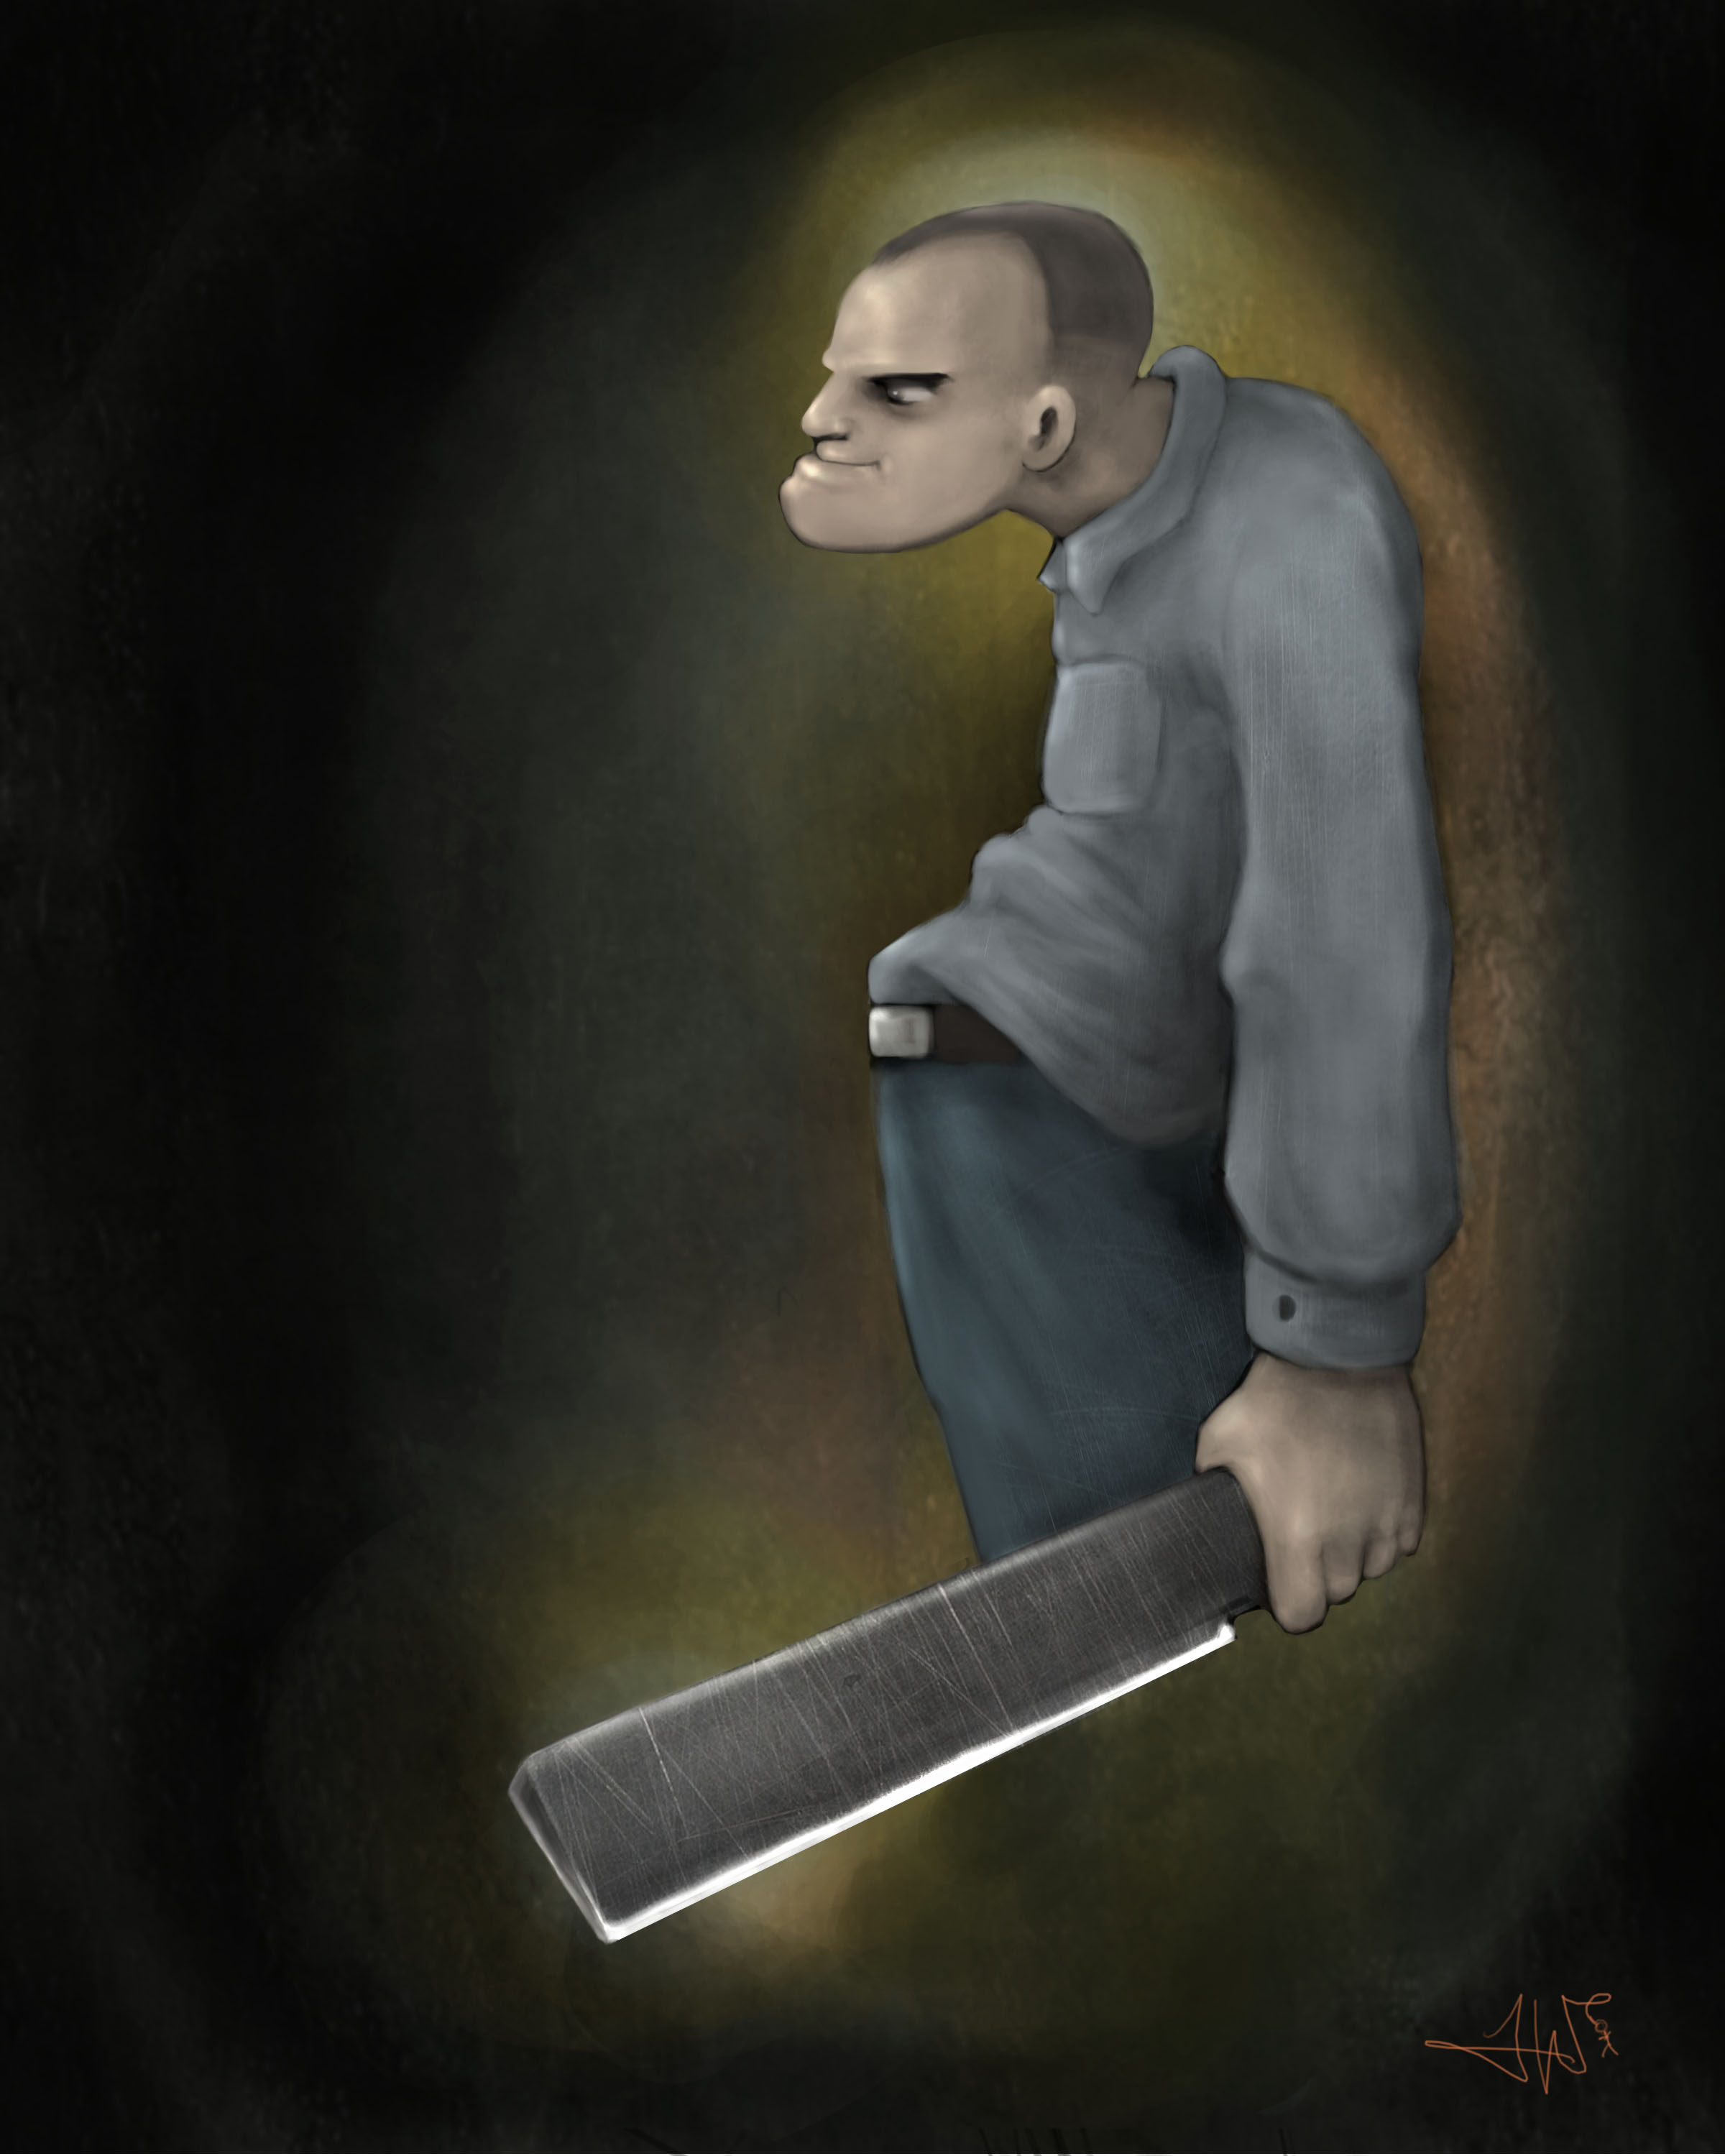 sling blade Directed by billy bob thornton with billy bob thornton, dwight yoakam, jt walsh, john ritter karl childers, a simple man hospitalized since his childhood murder of his mother and her lover, is released to start a new life in a small town.